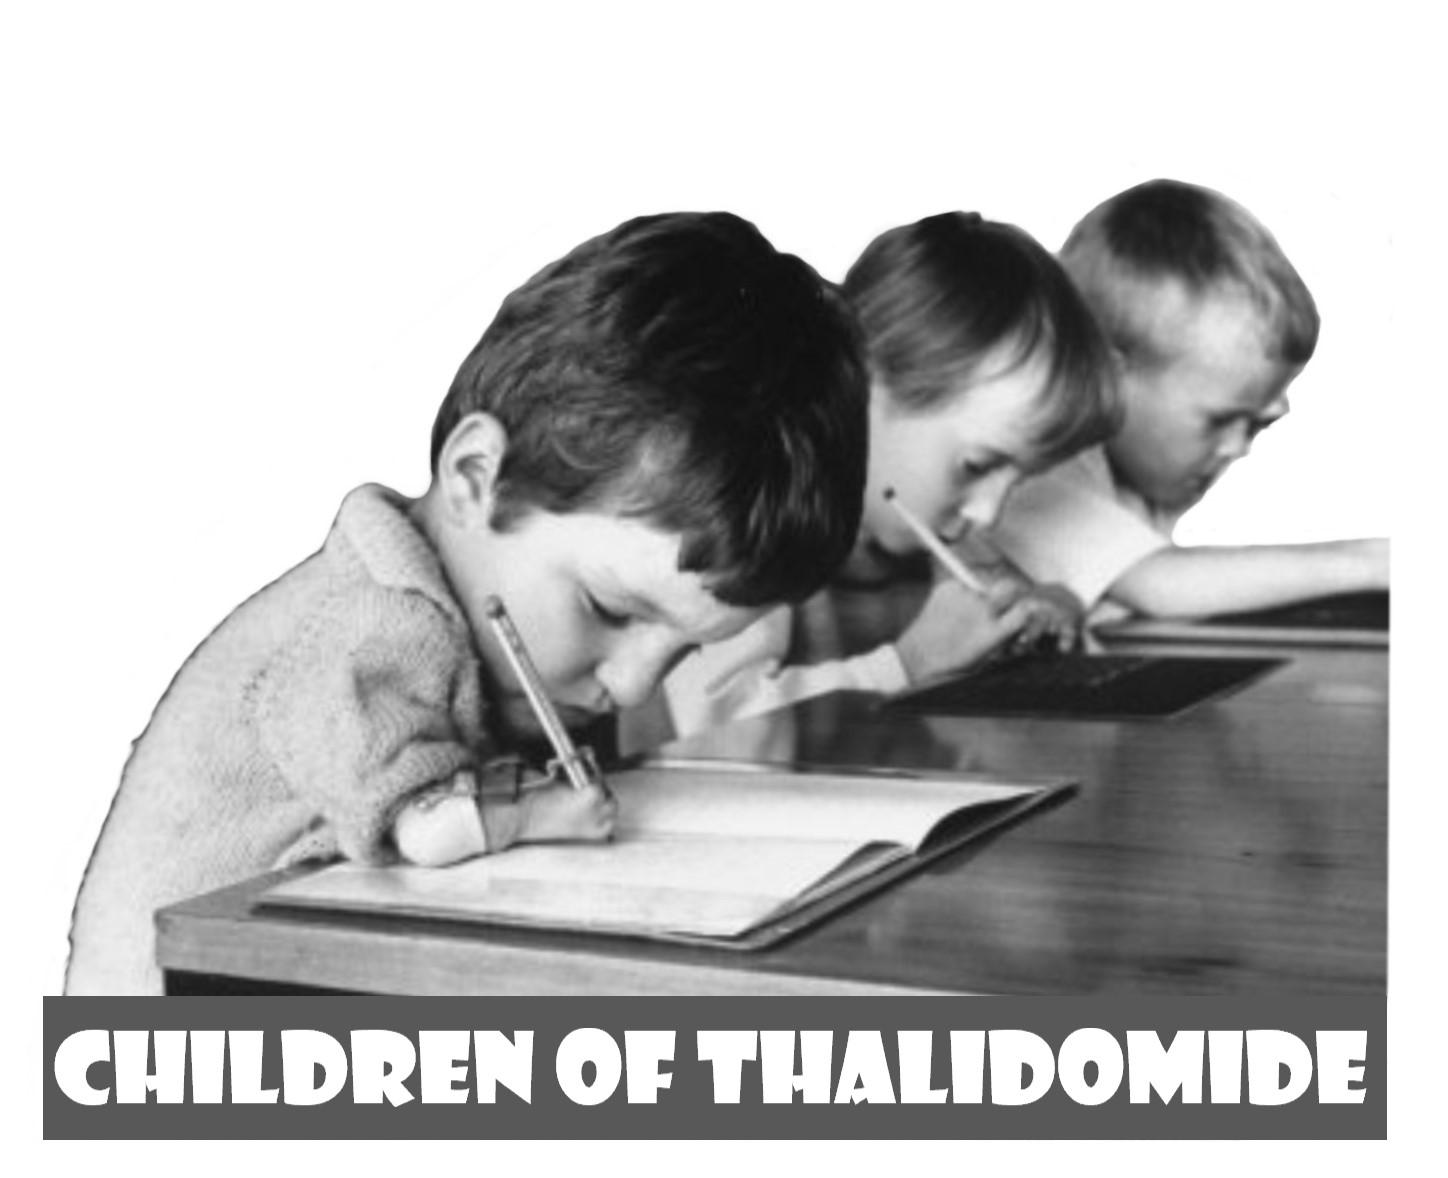 Part One of Three - The Children of Thalidomide Chronicles